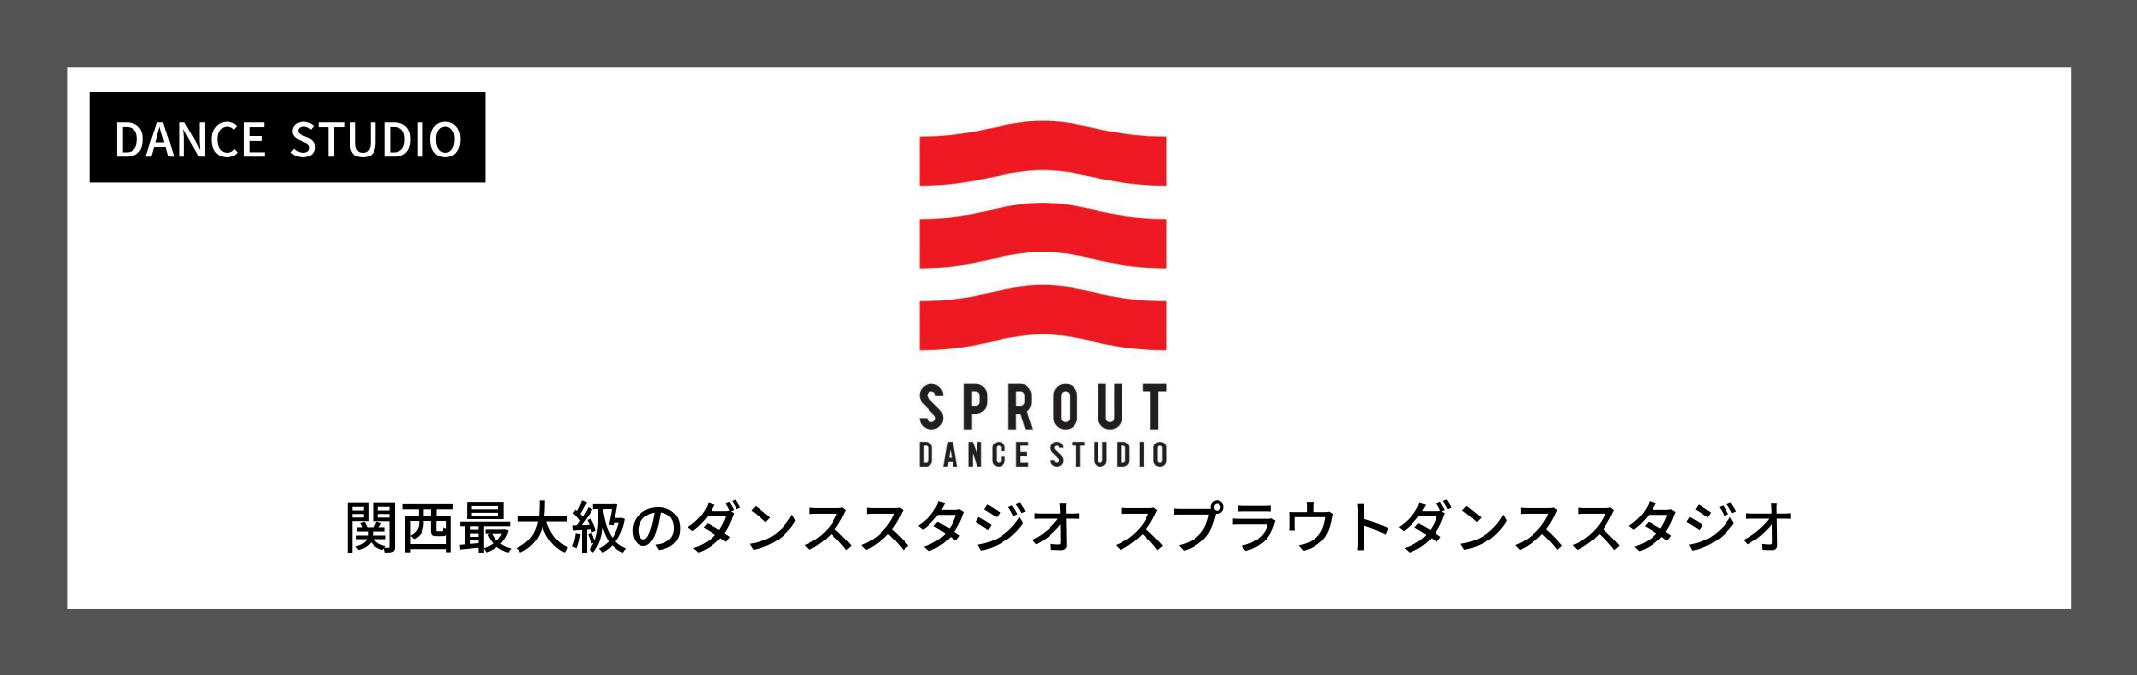 SPROUT DANCE STUDIO